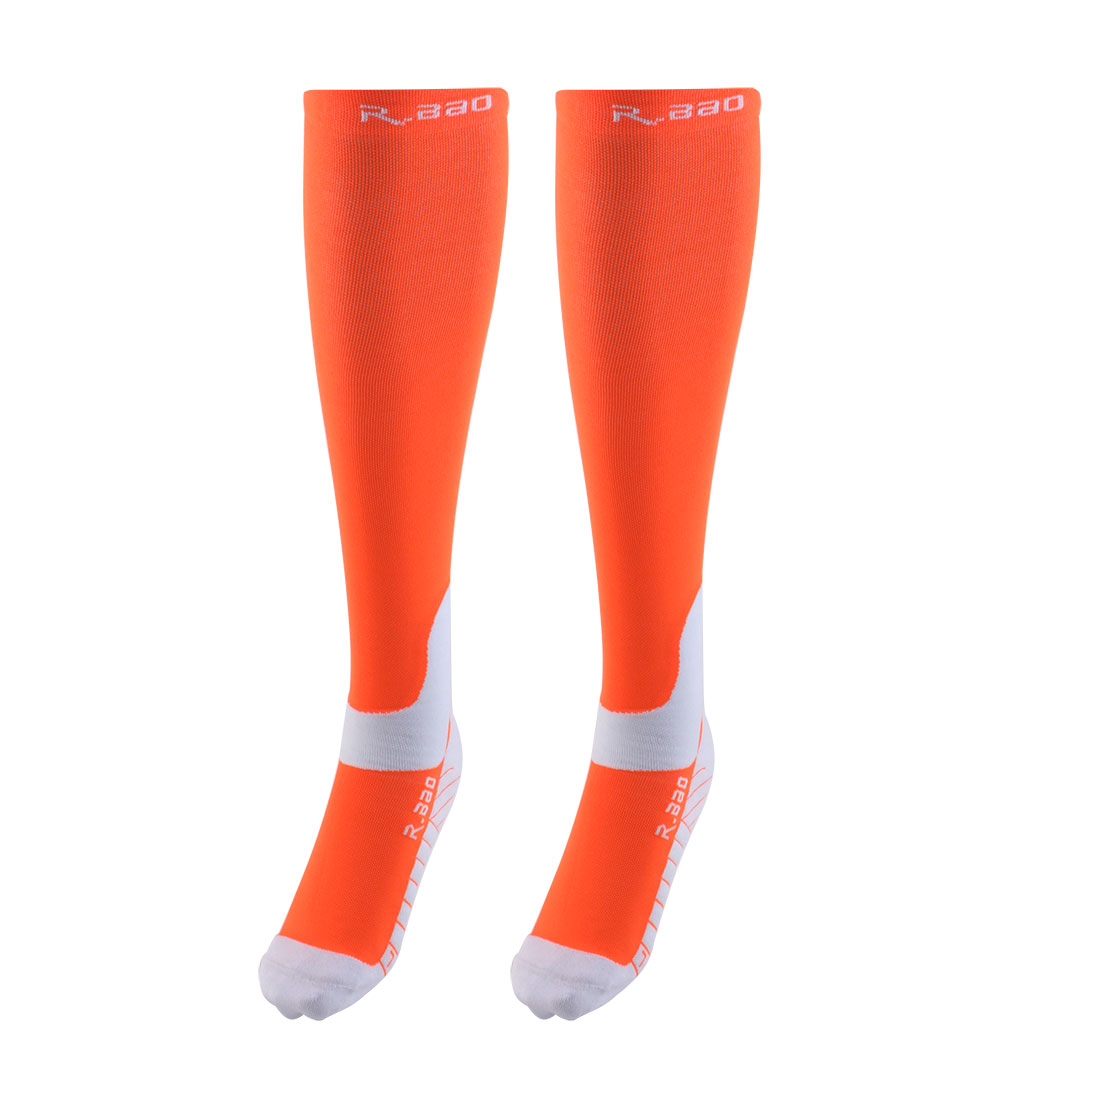 R-BAO Authorized Bicycle Running Mountain Bike Cotton Blend Breathable Sports Cycling Socks Orange L